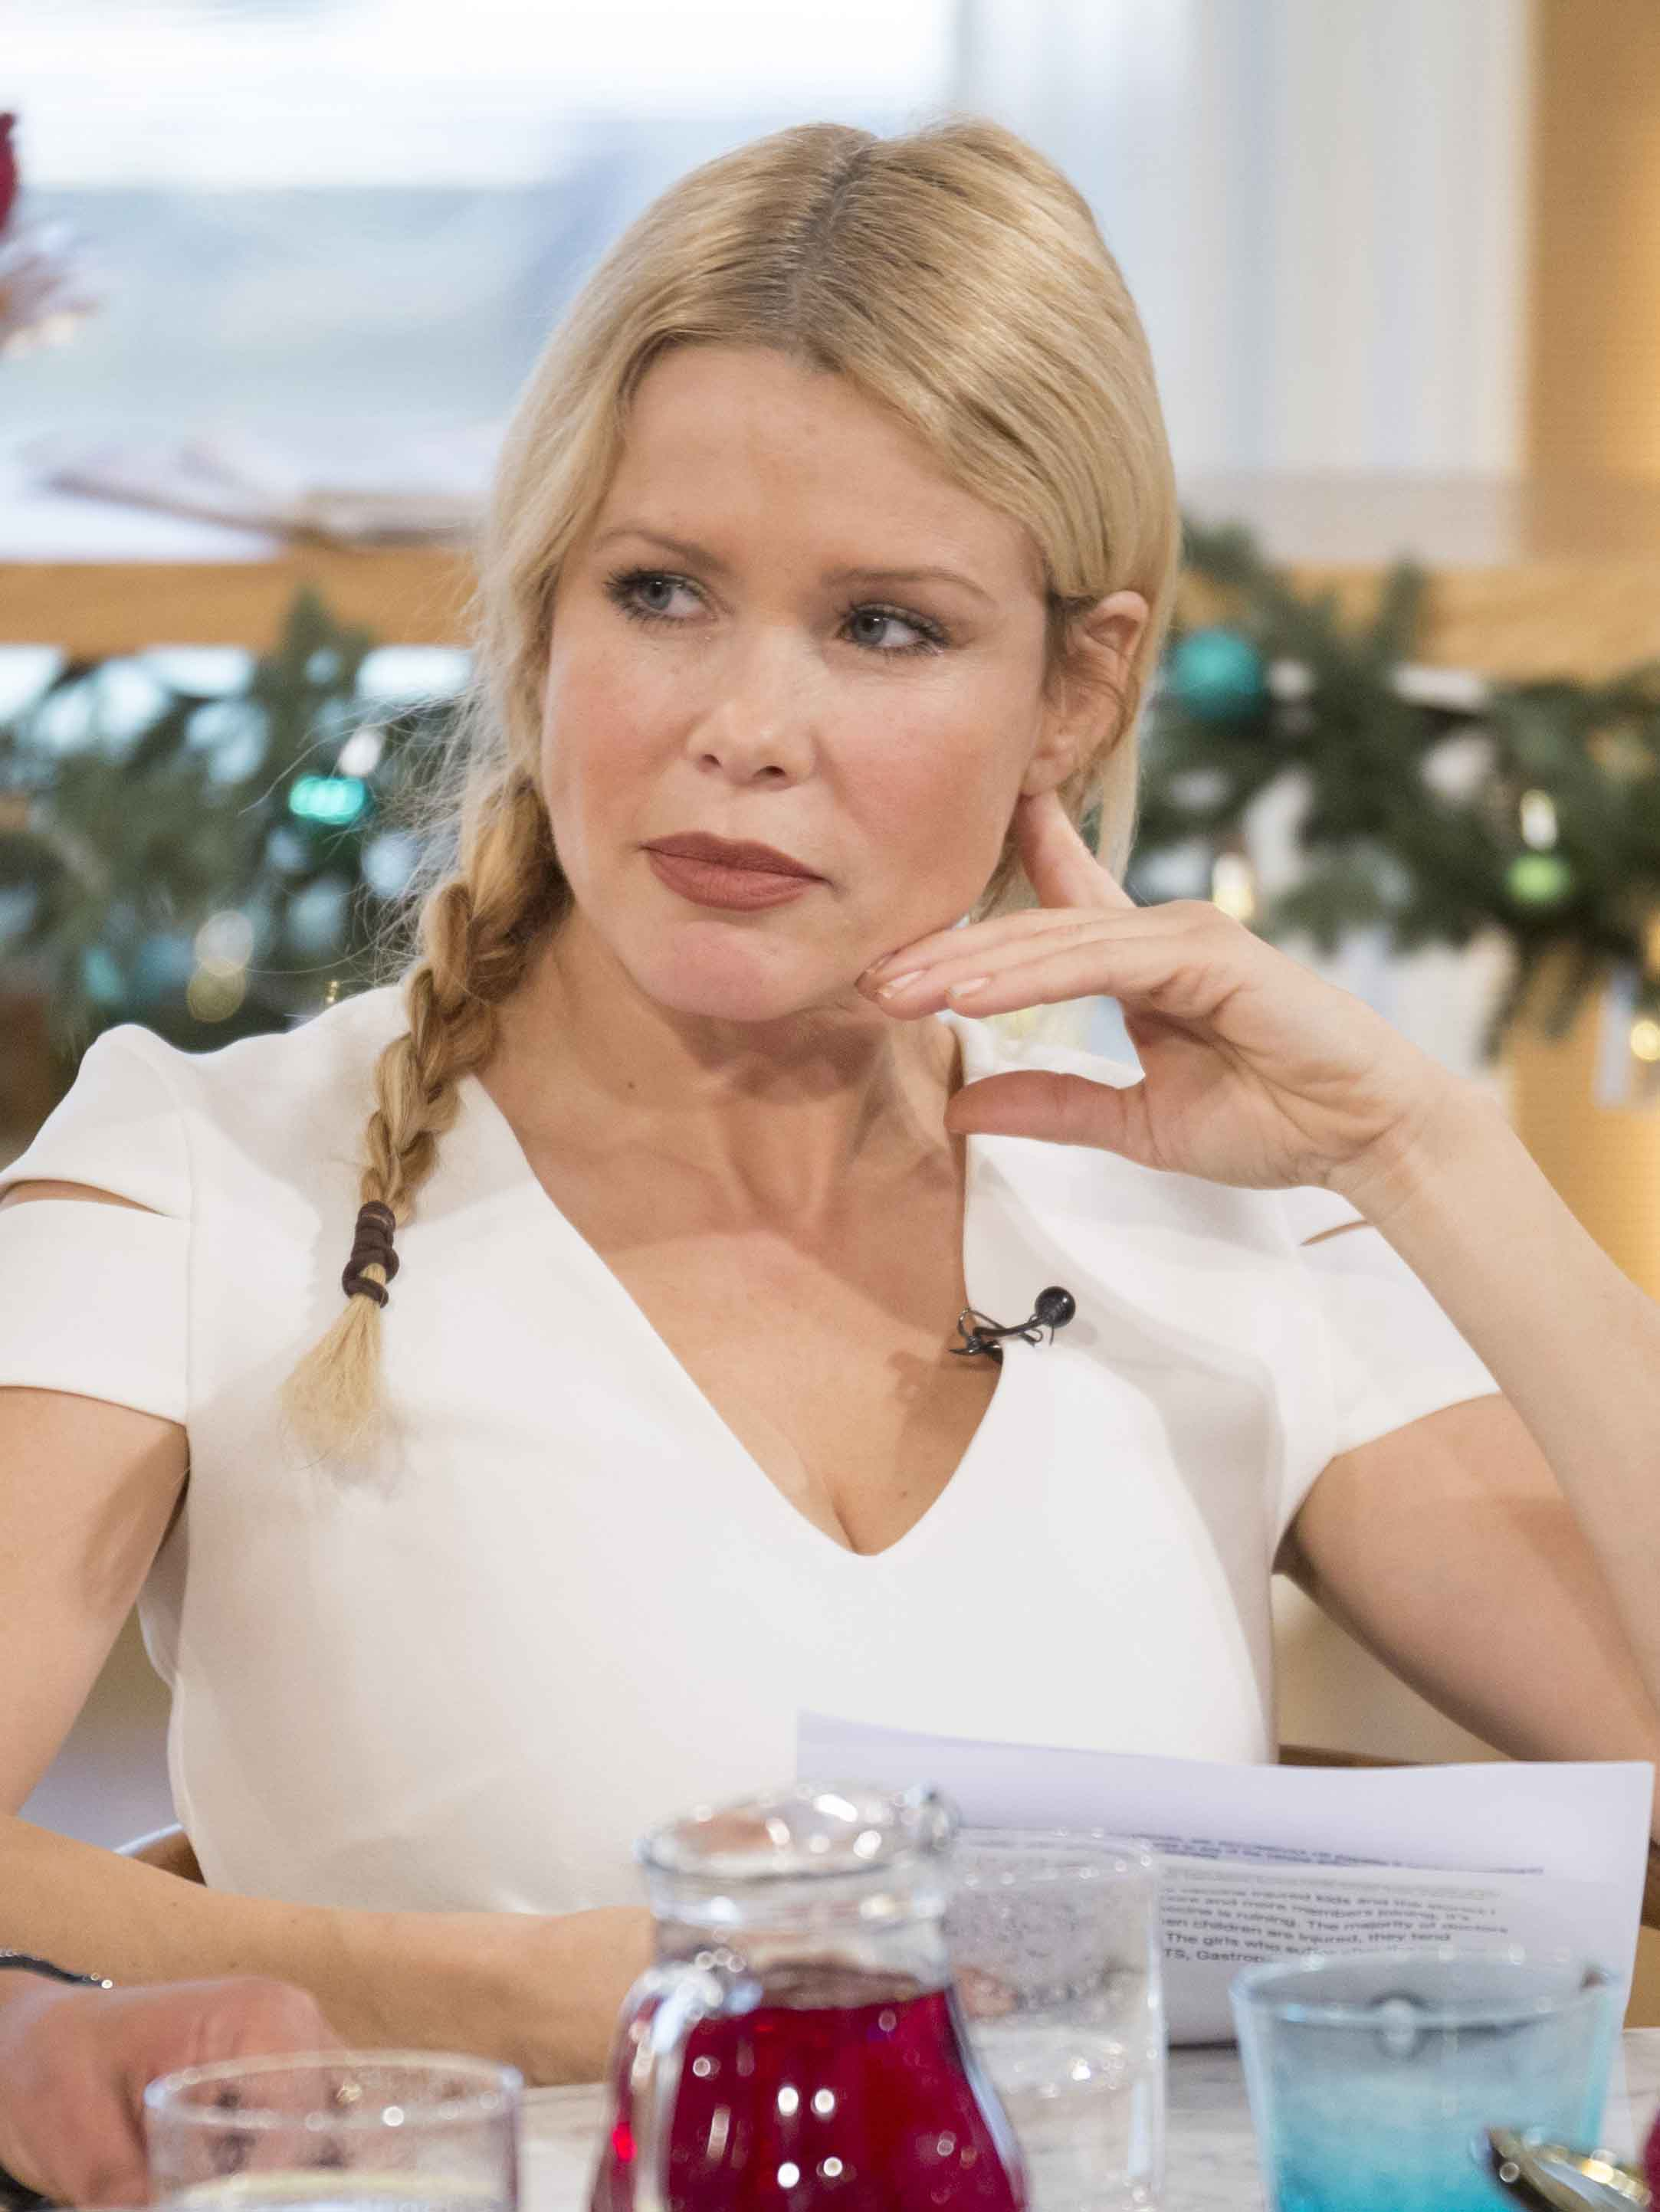 melinda messenger hits back after controversial hpv